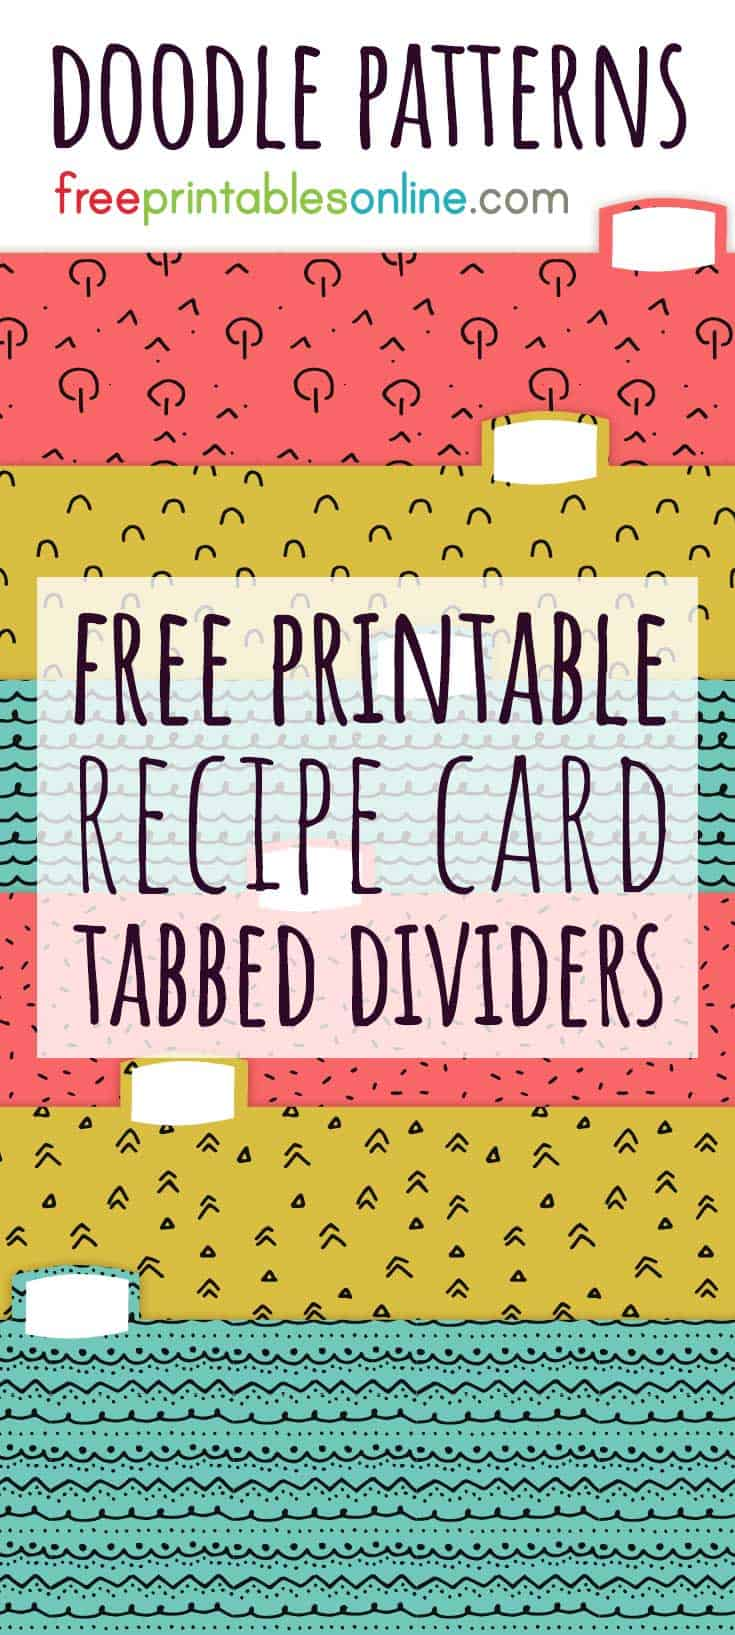 Recipe card box dividers